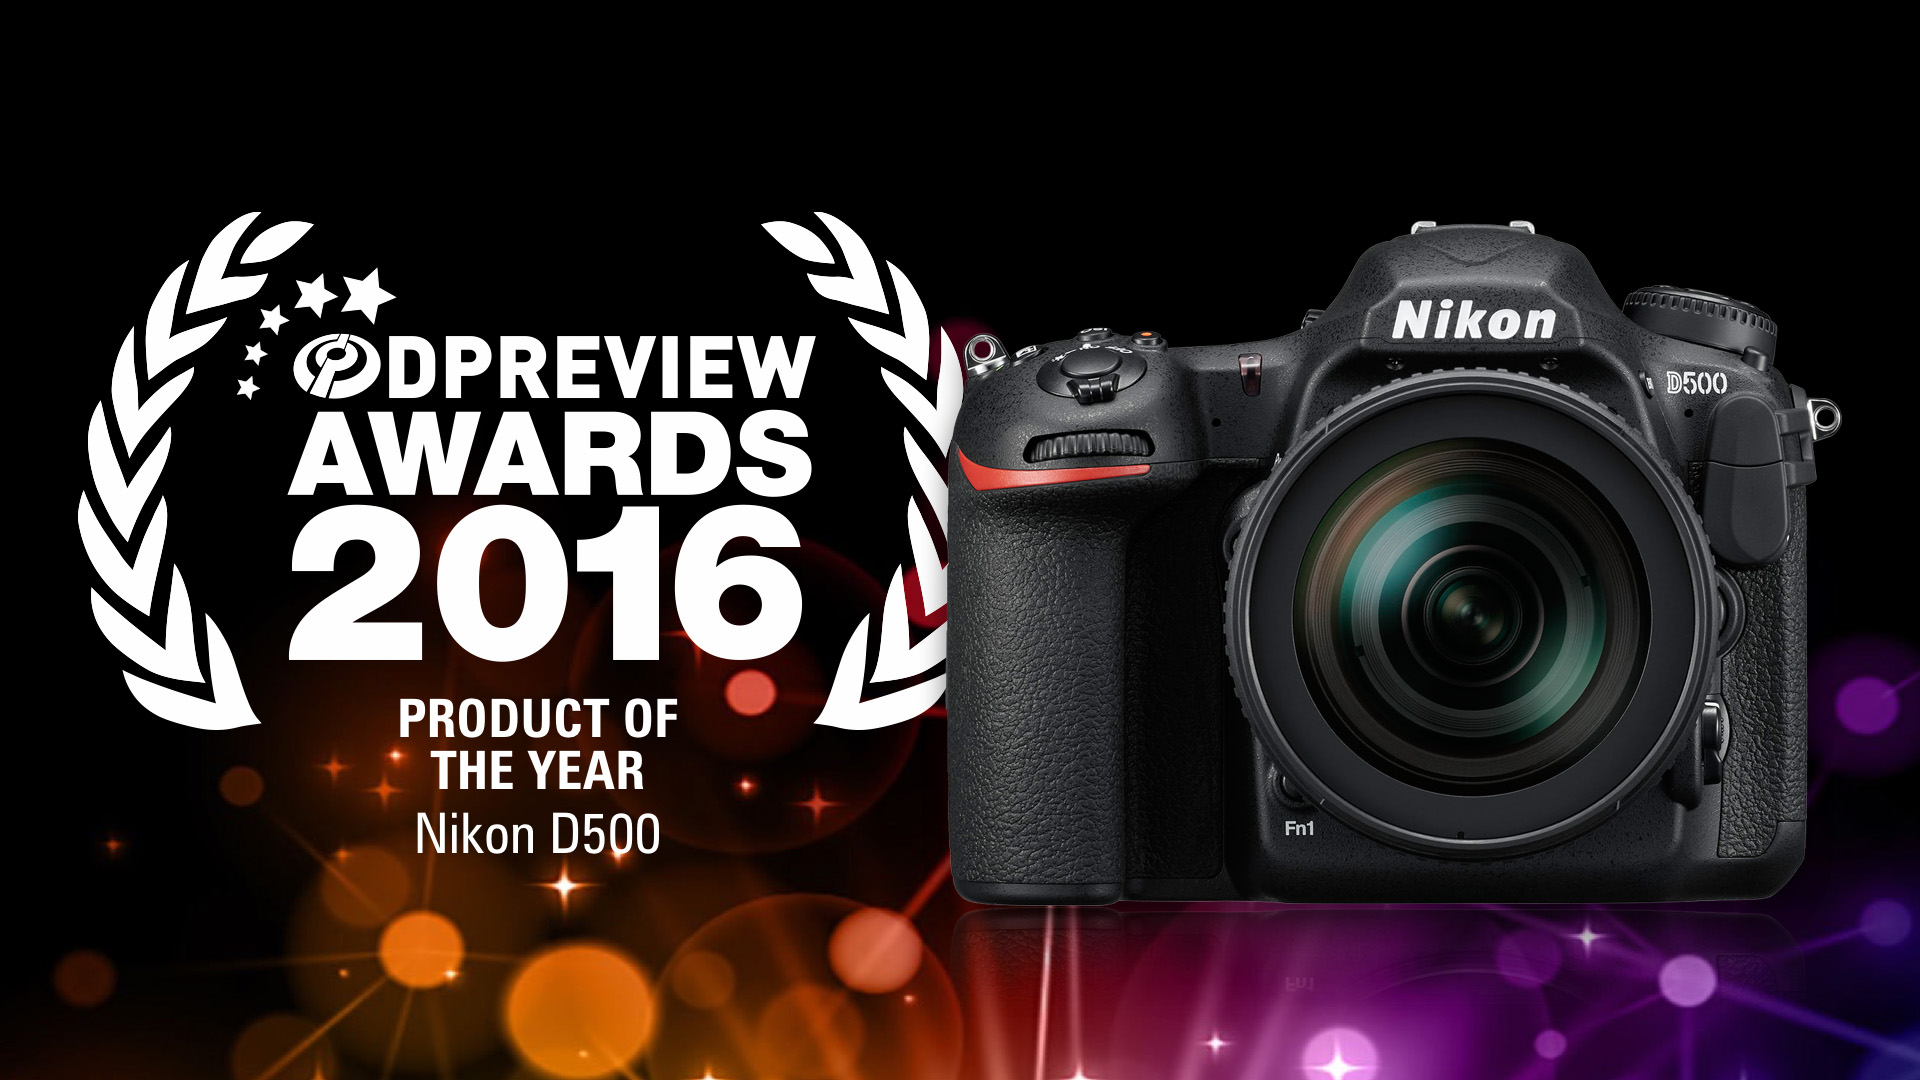 DPReview Awards 2016 – Product of the year – Nikon D500